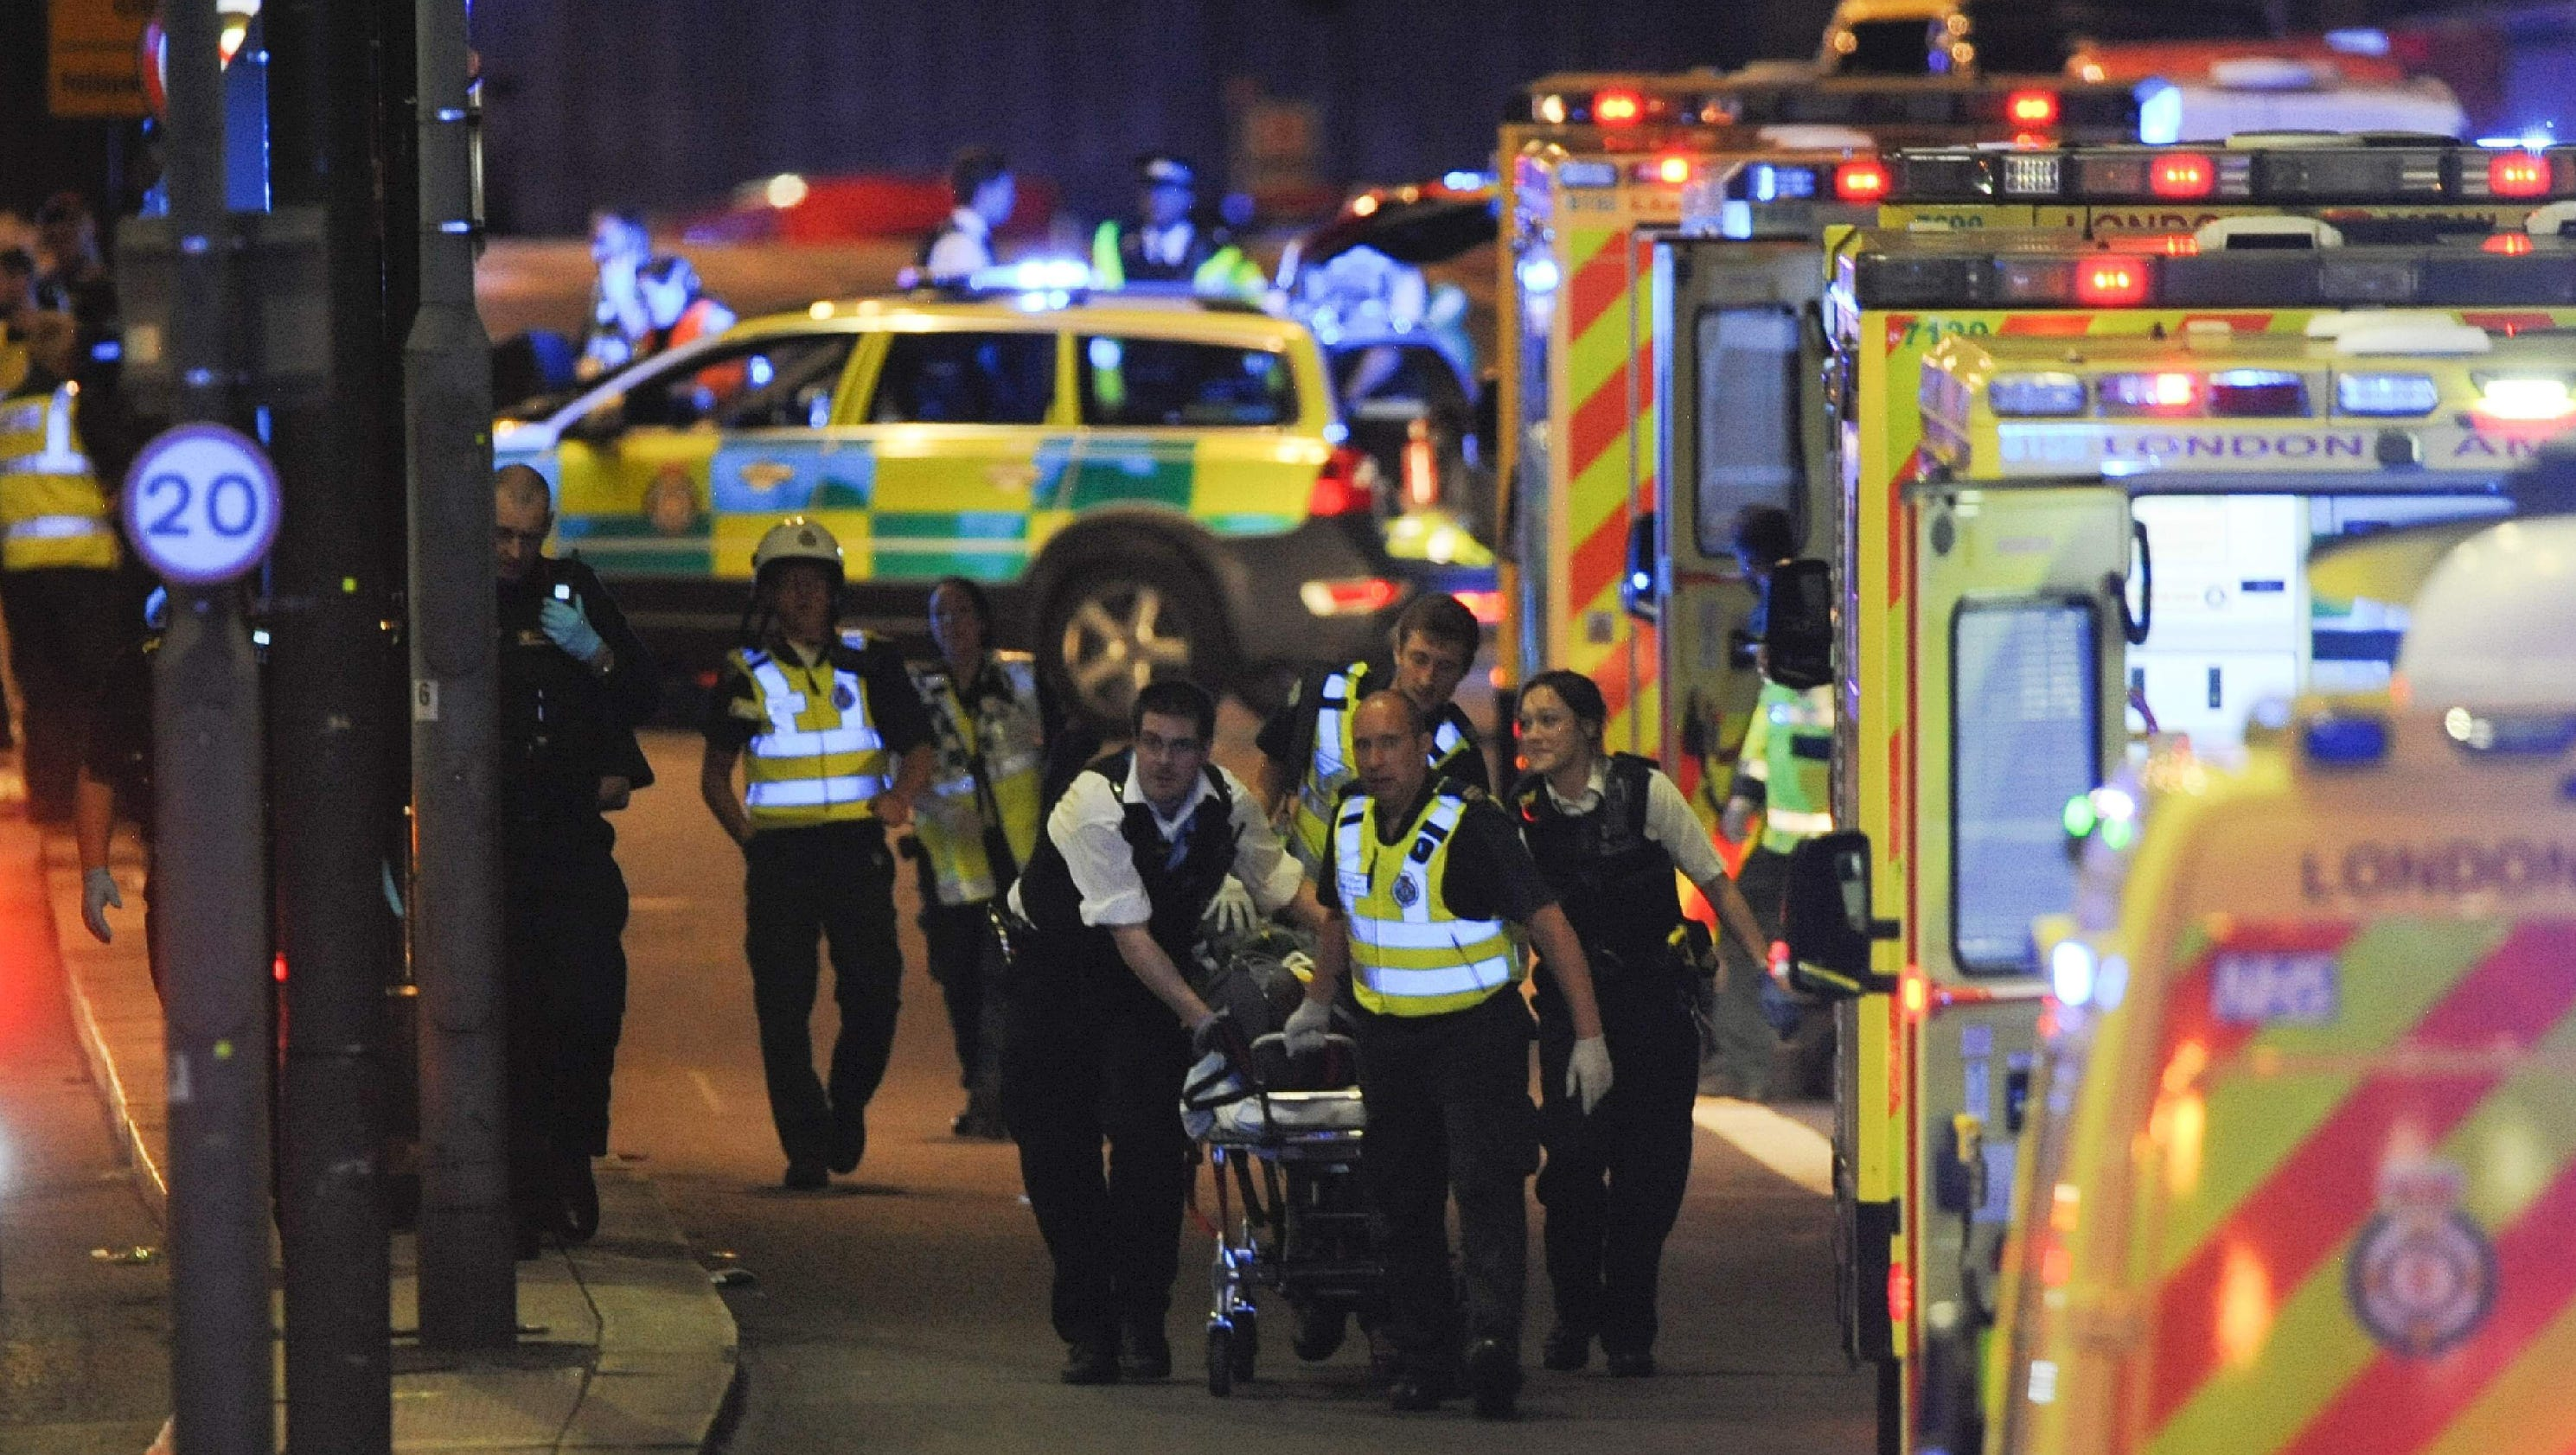 No U.S. terror threats after London attack, Homeland Security says